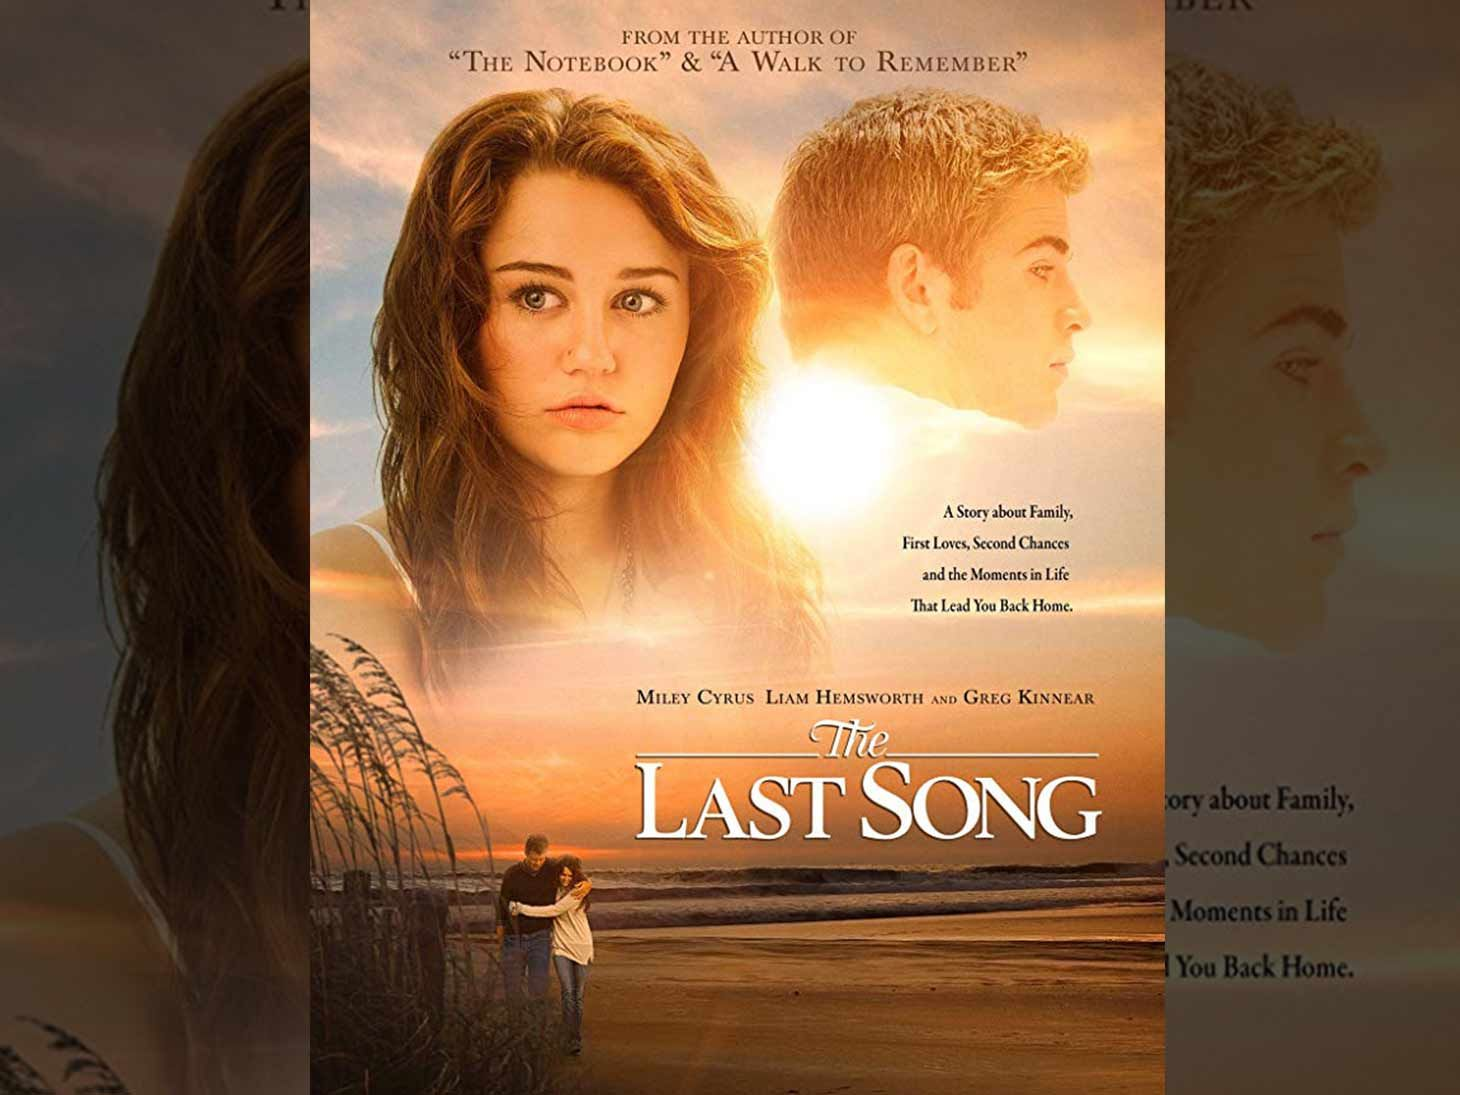 Last Song Wedding.Miley Cyrus Liam Hemsworth S The Last Song Sees Massive